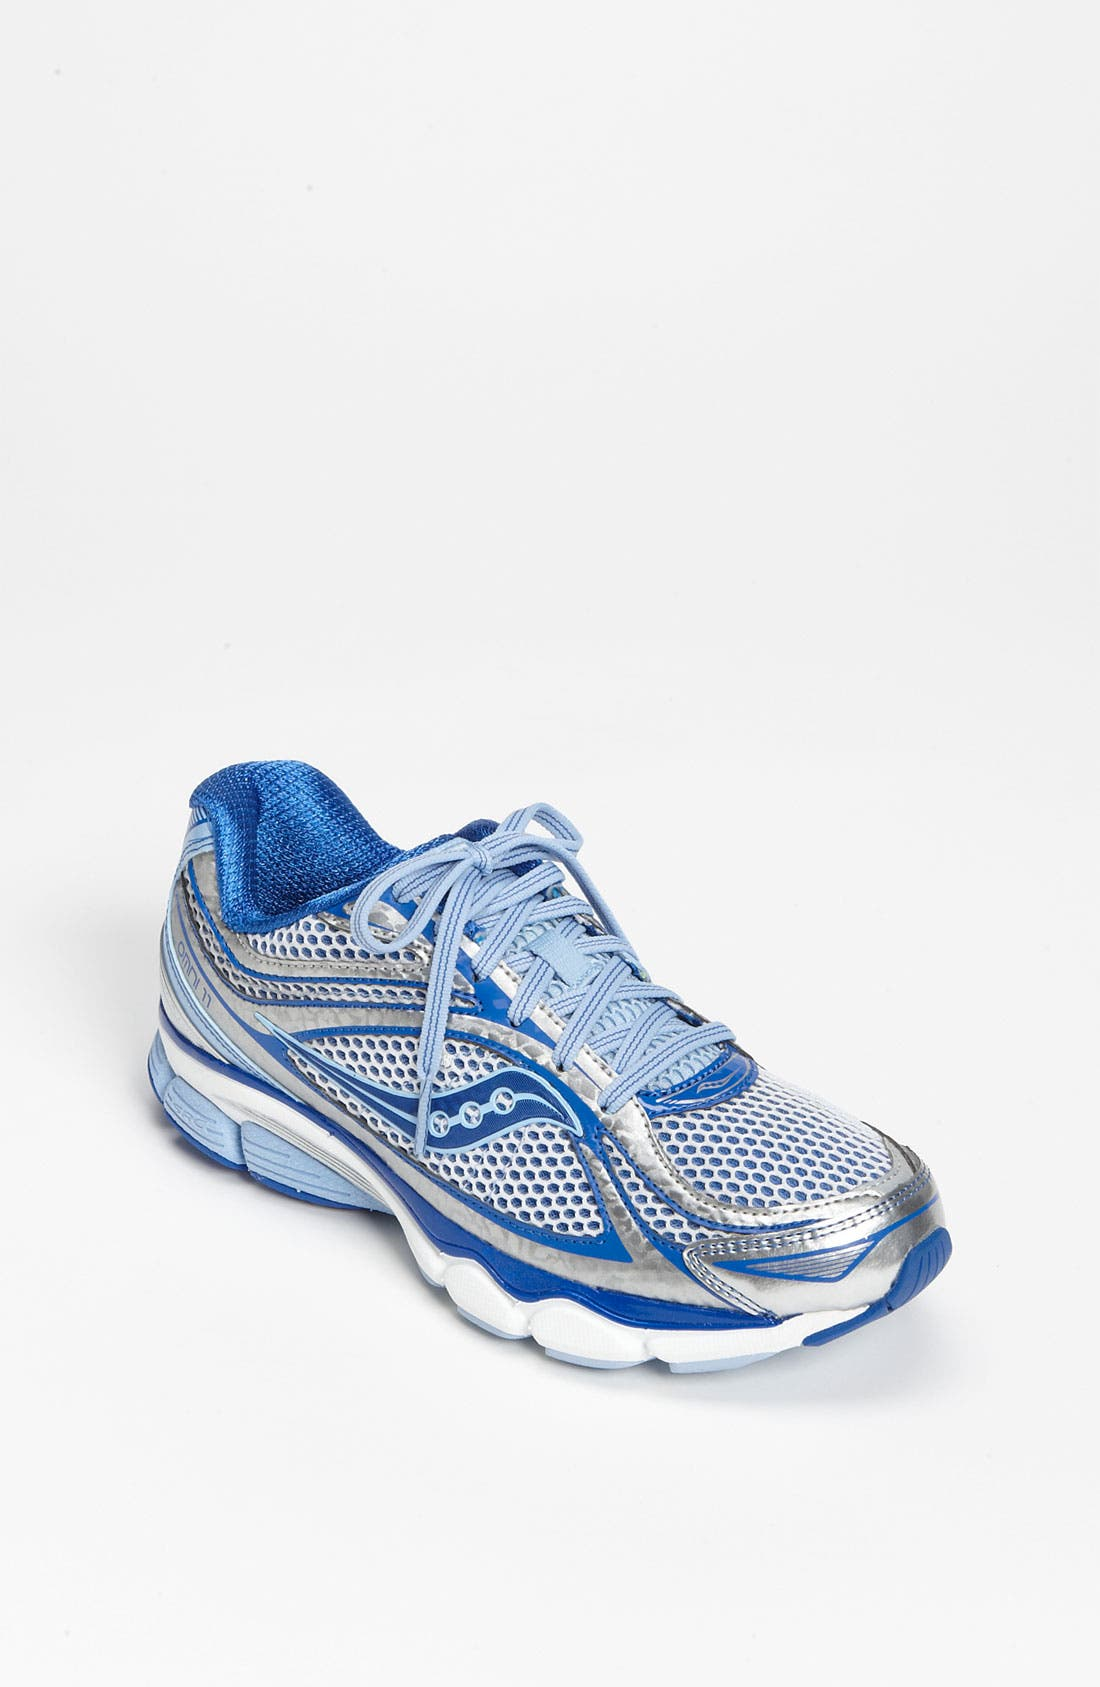 Alternate Image 1 Selected - Saucony 'ProGrid Omni 11' Running Shoe (Women)